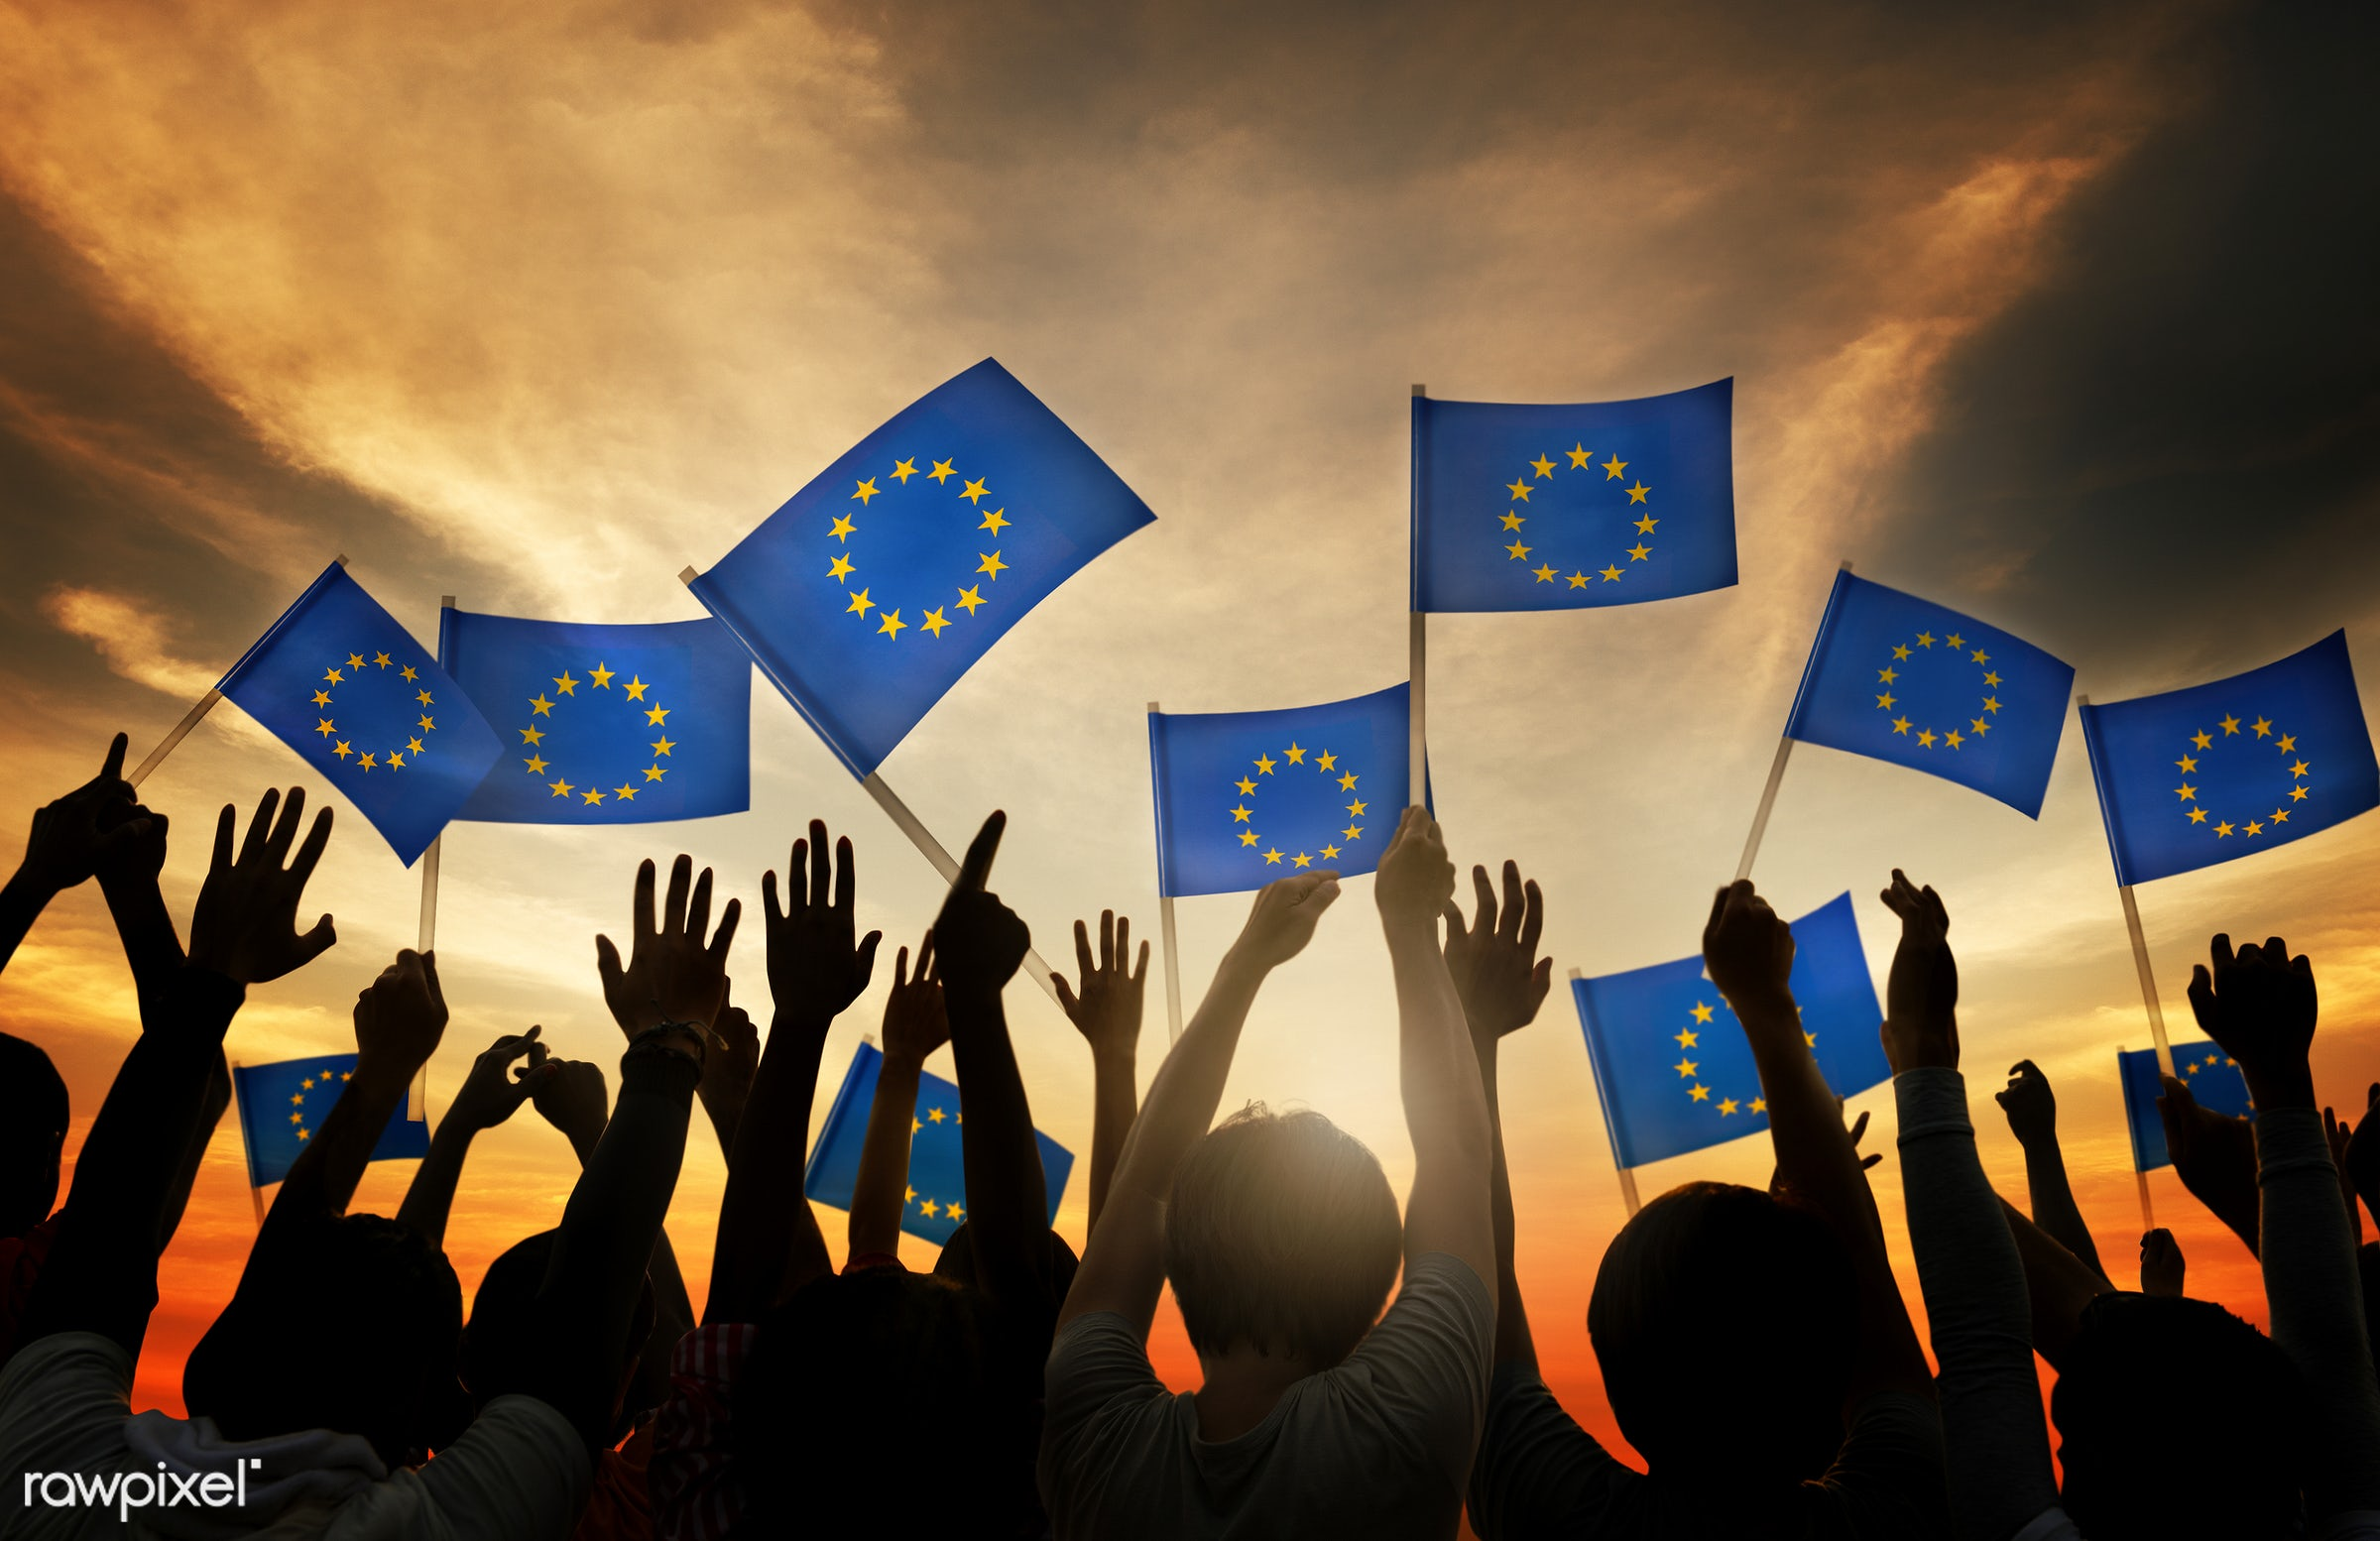 eu, arms raised, audience, back lit, celebration, cheerful, community, connection, crowd, ecstatic, europe, european...